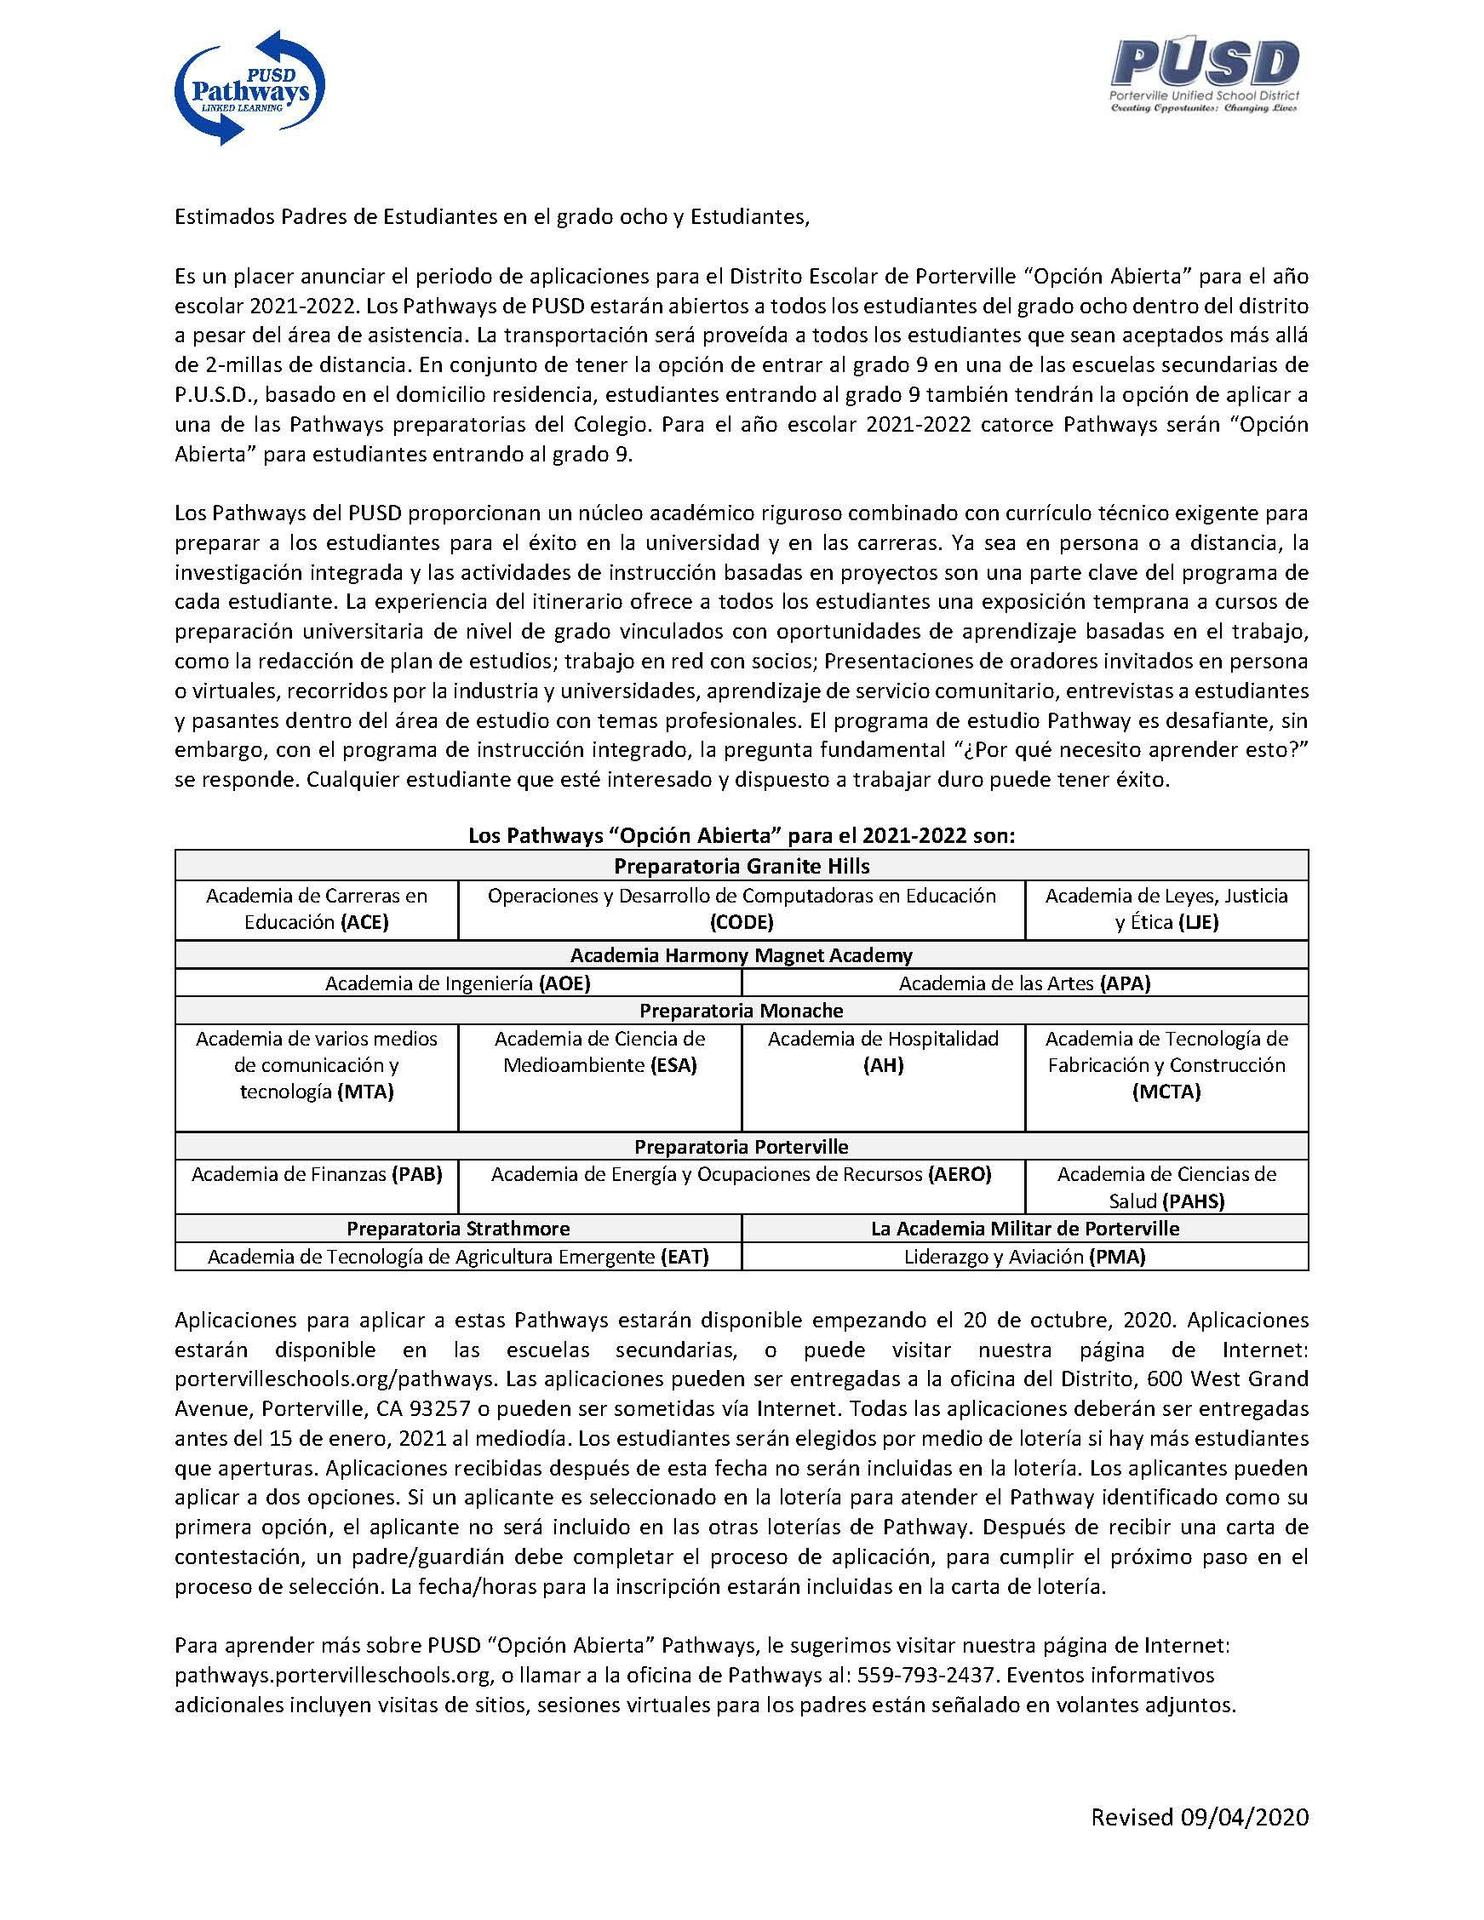 Parent Letter- Spanish